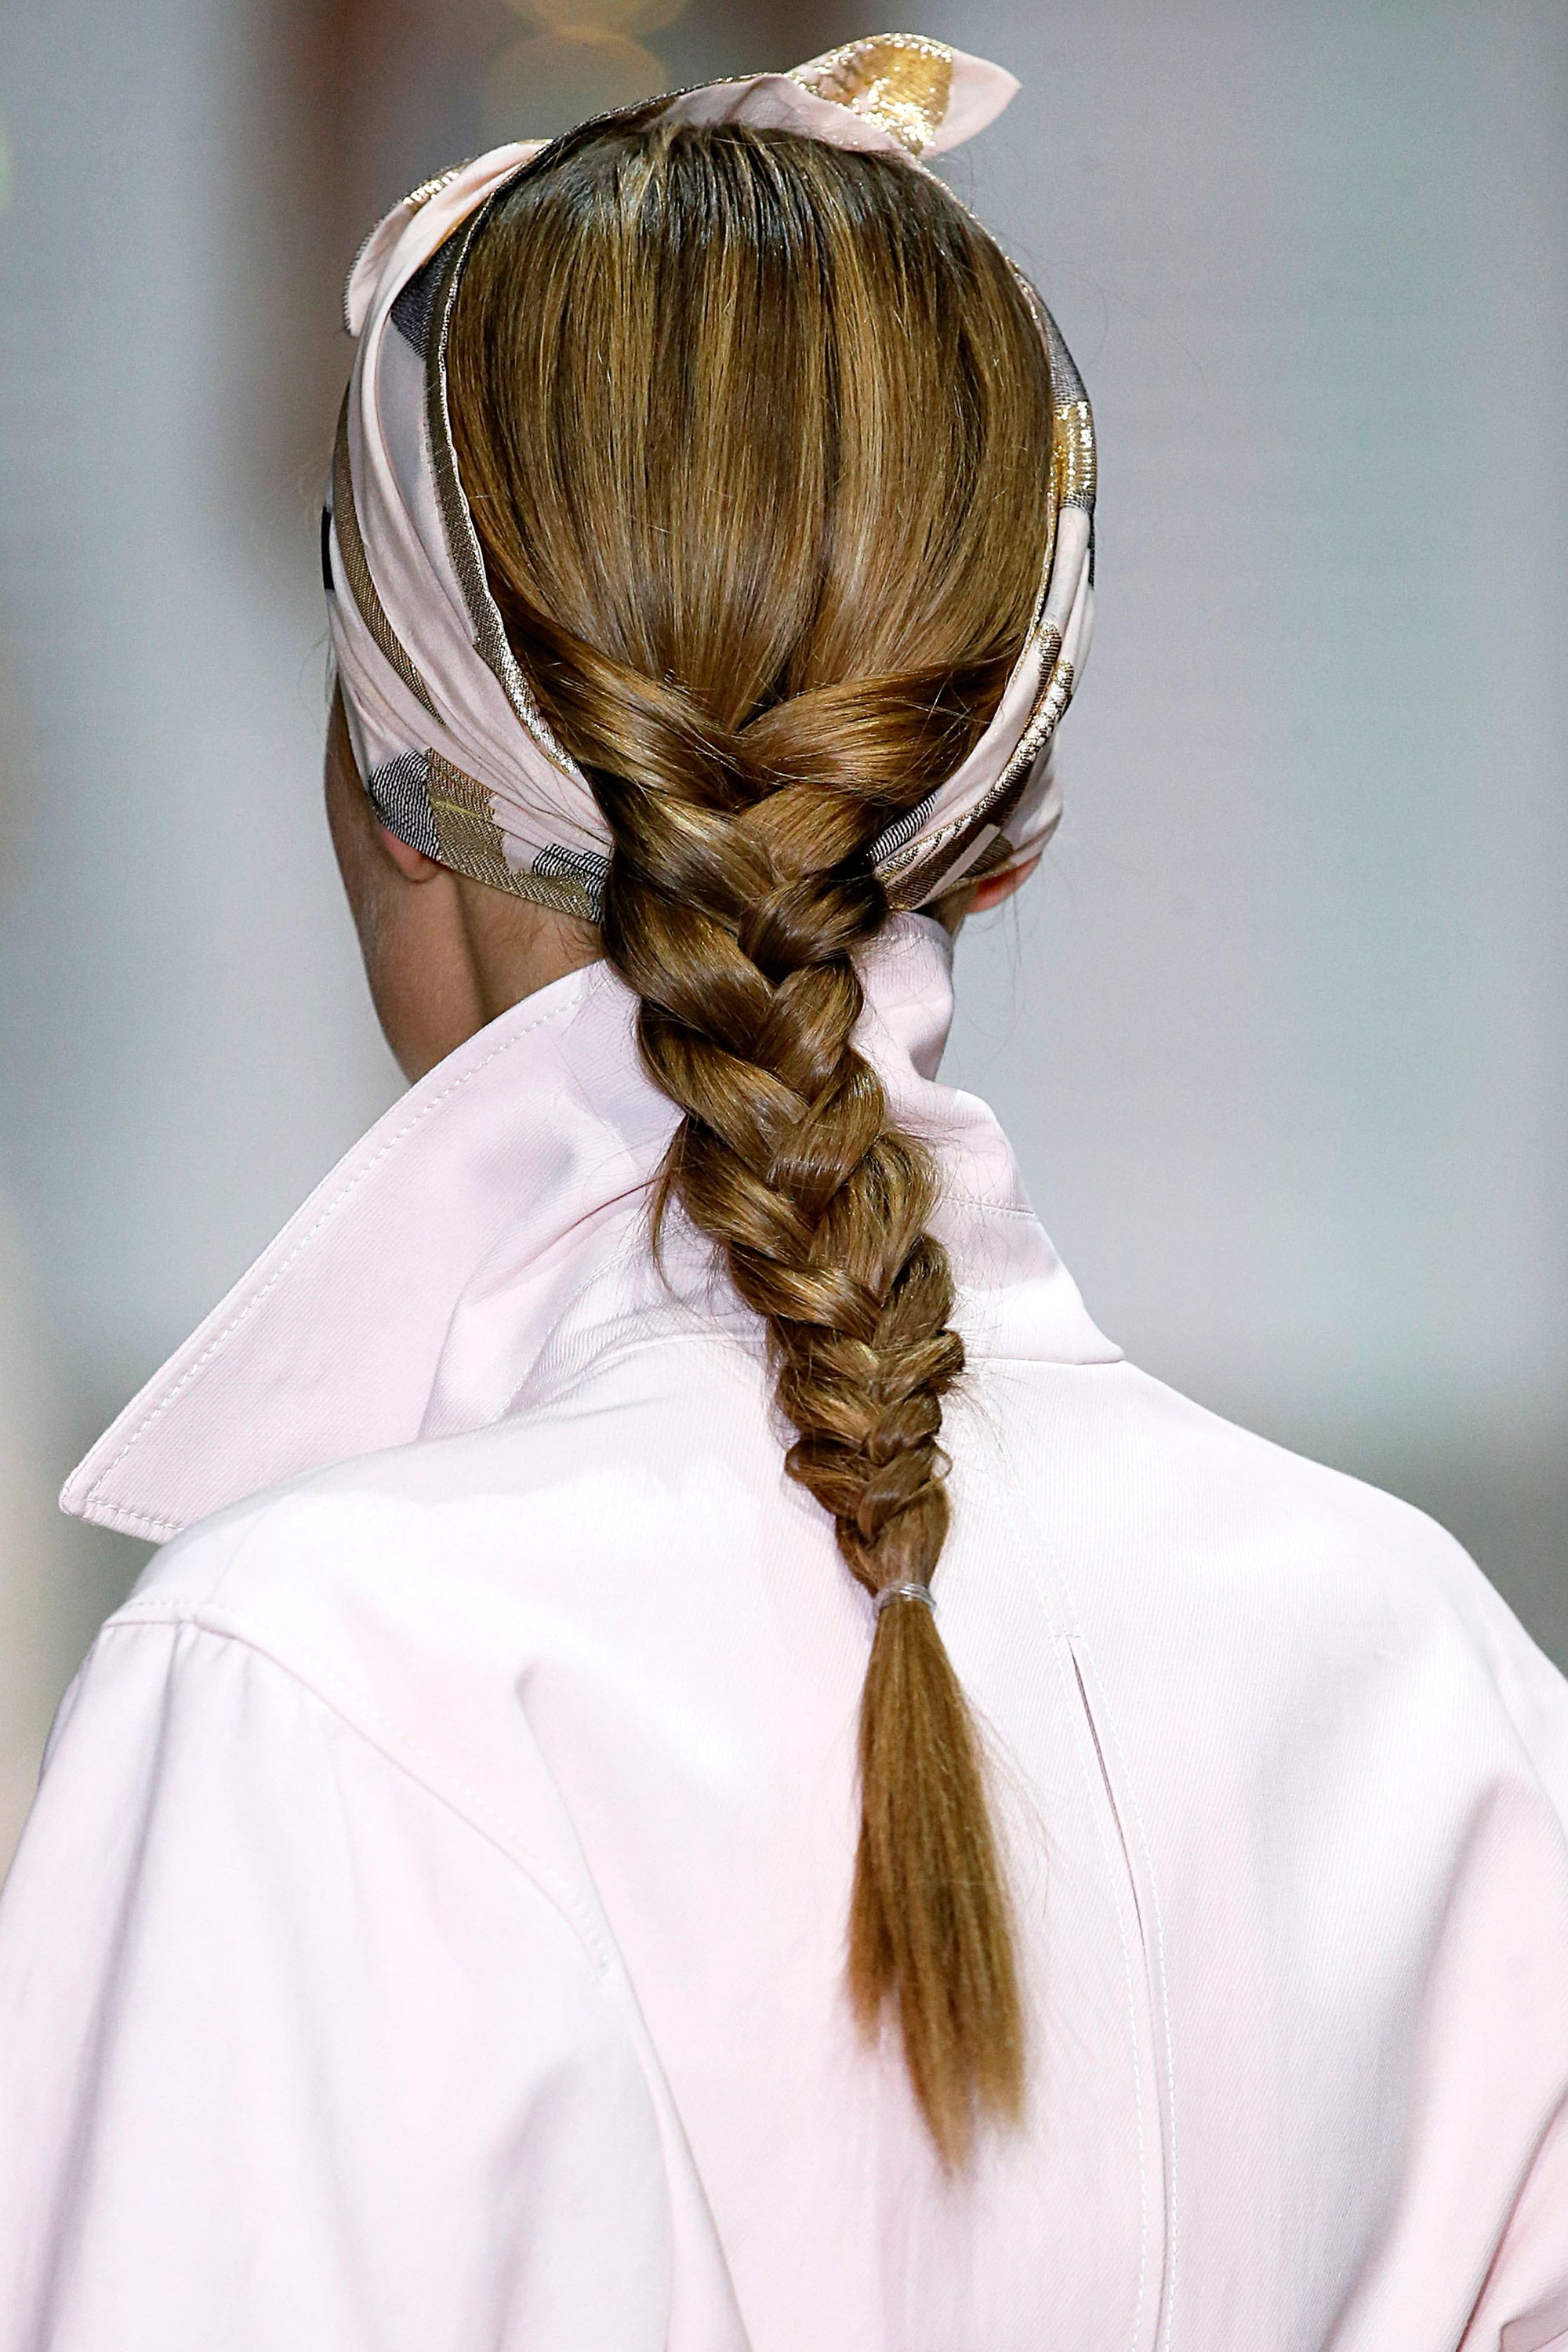 Hair trends for spring summer 2018 - Hair trends from fashion week SS18